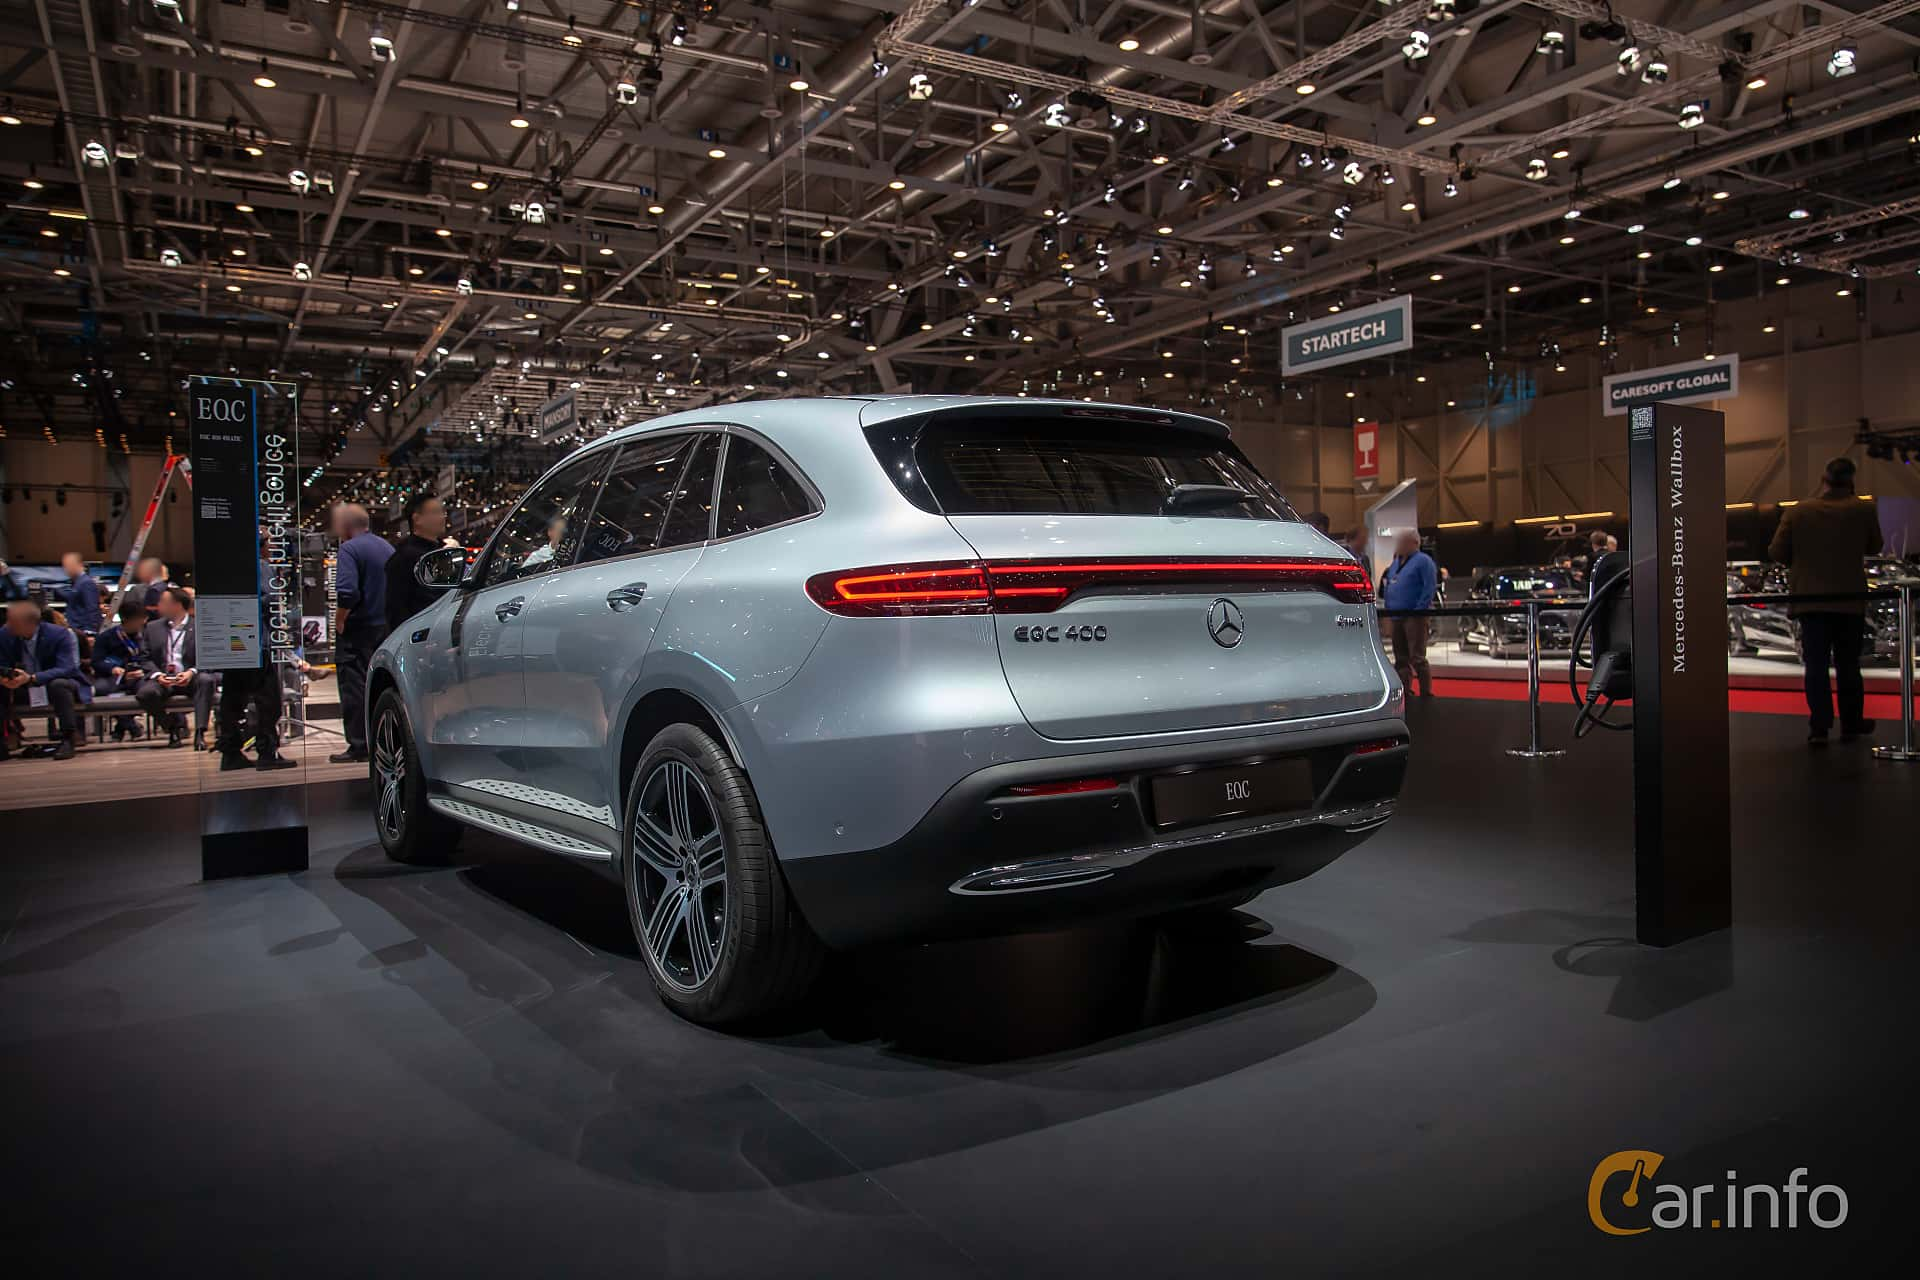 Bak/Sida av Mercedes-Benz EQC 400  Single Speed, 408ps, 2019 på Geneva Motor Show 2019